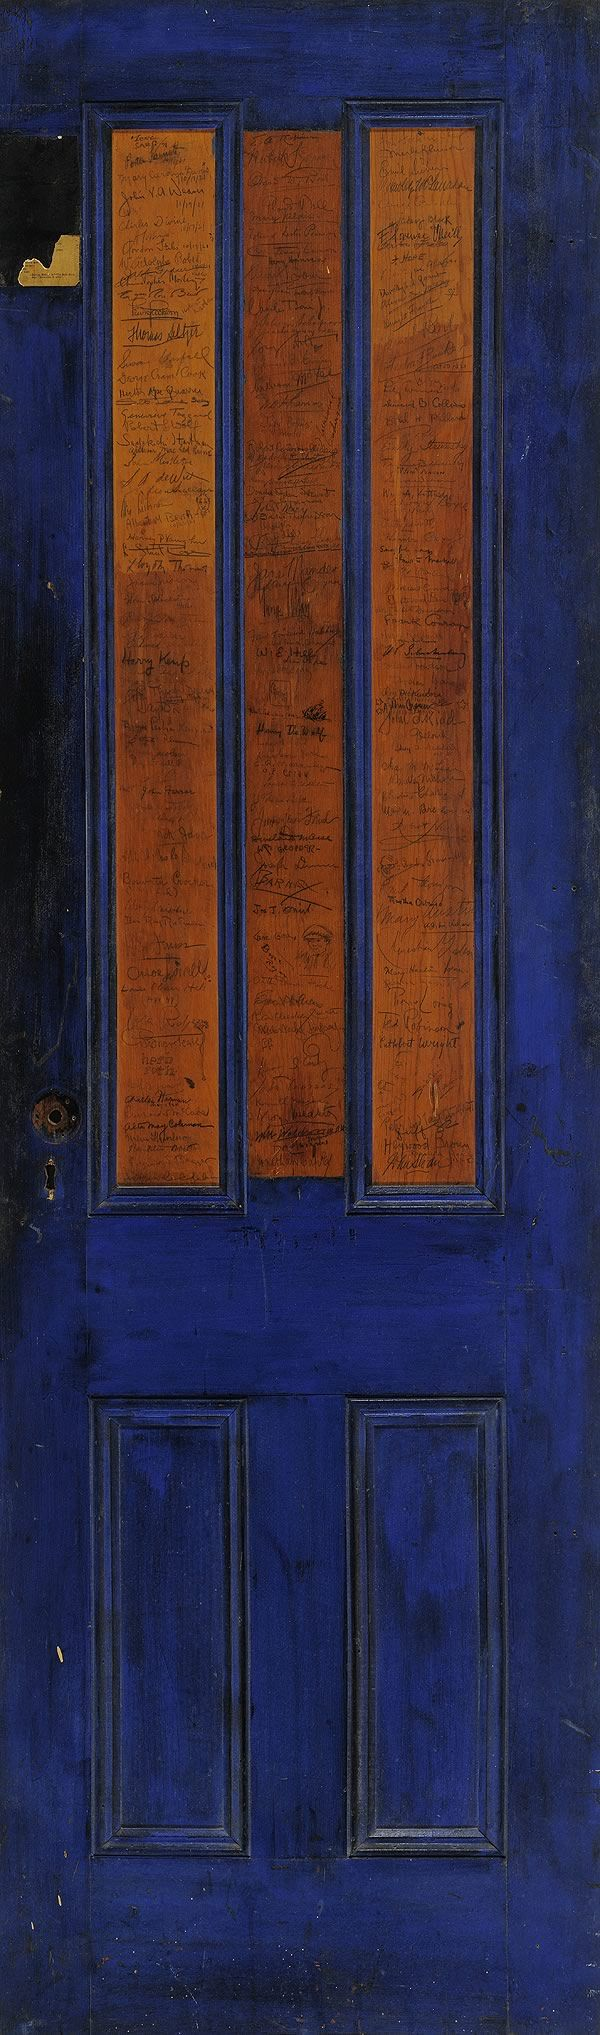 The Greenwich Village Bookshop Door: A Portal to Bohemia 1920-1925.              (Interactive website; you can select specific panels, learn about history of door & discover ~200 artifacts & the shop's notable customers). Very cool....